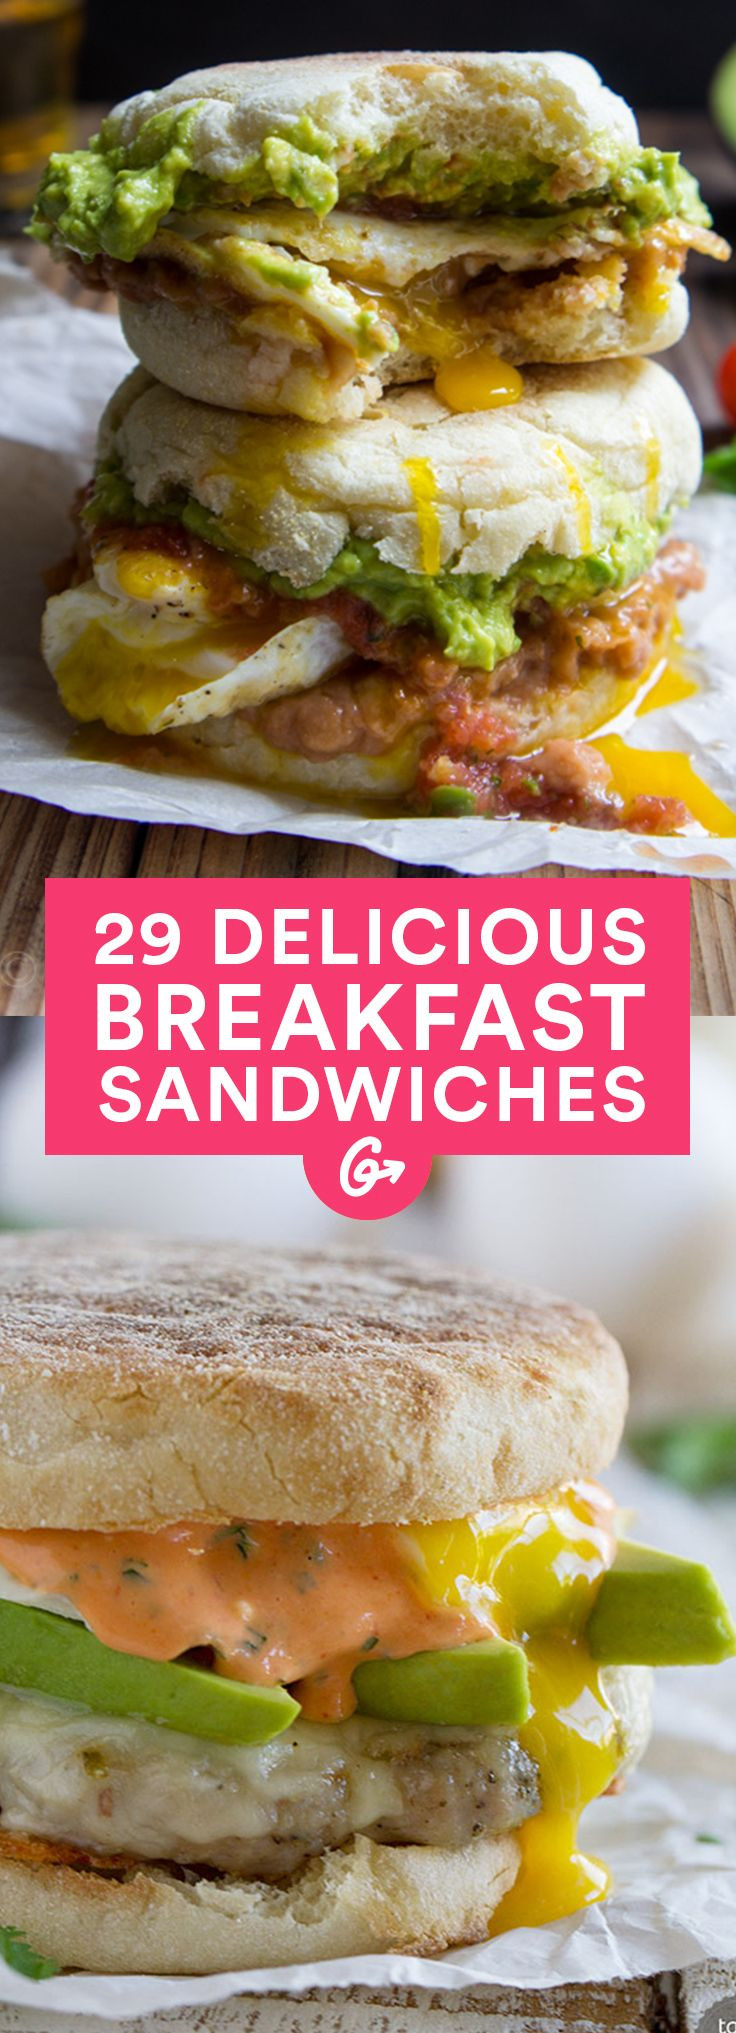 Healthy Fast Food Breakfast  These 27 Breakfast Sandwiches Put Fast Food Options to